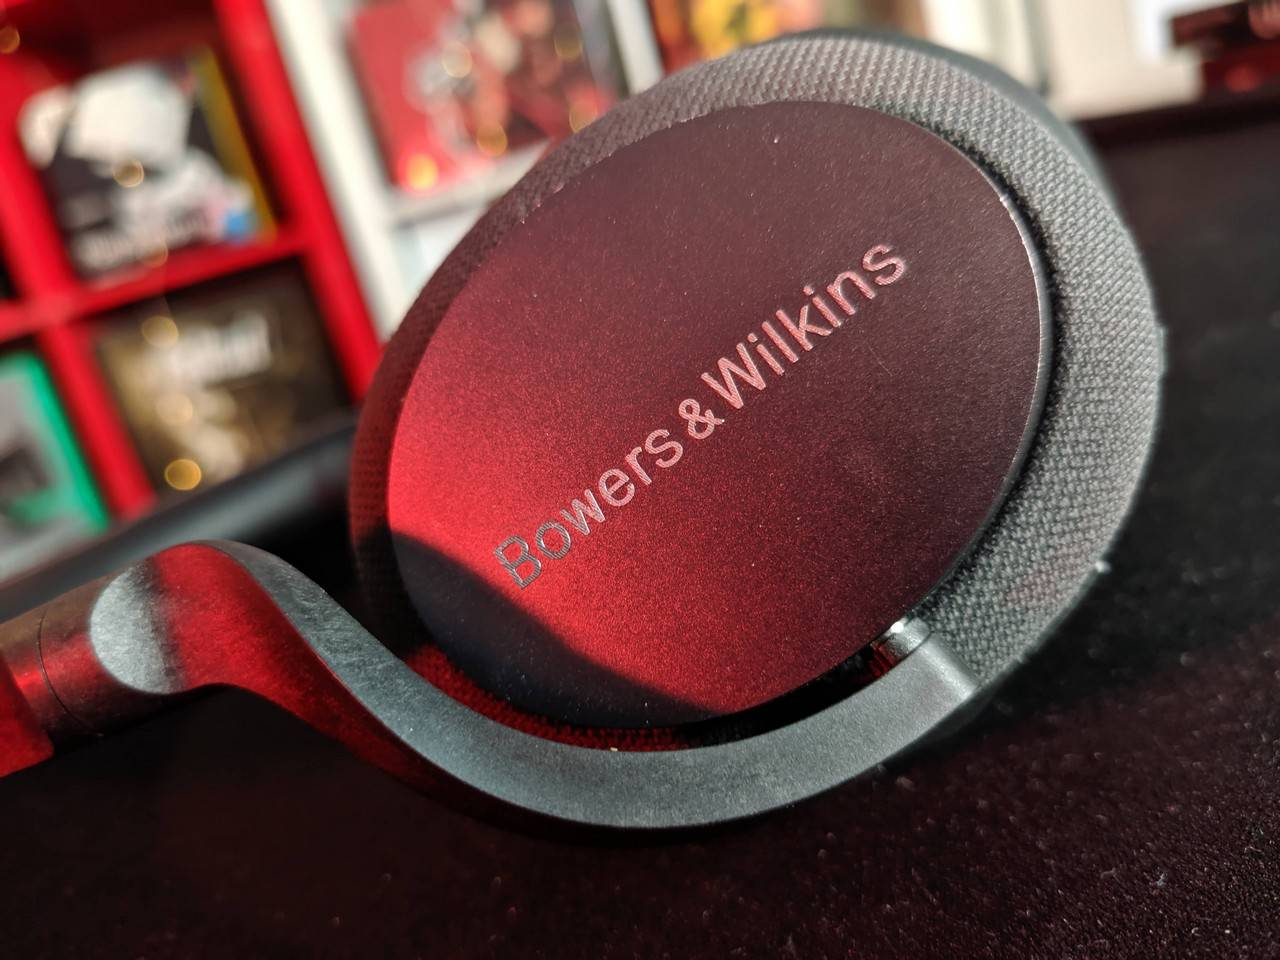 Bowsers & Wilkins PX5